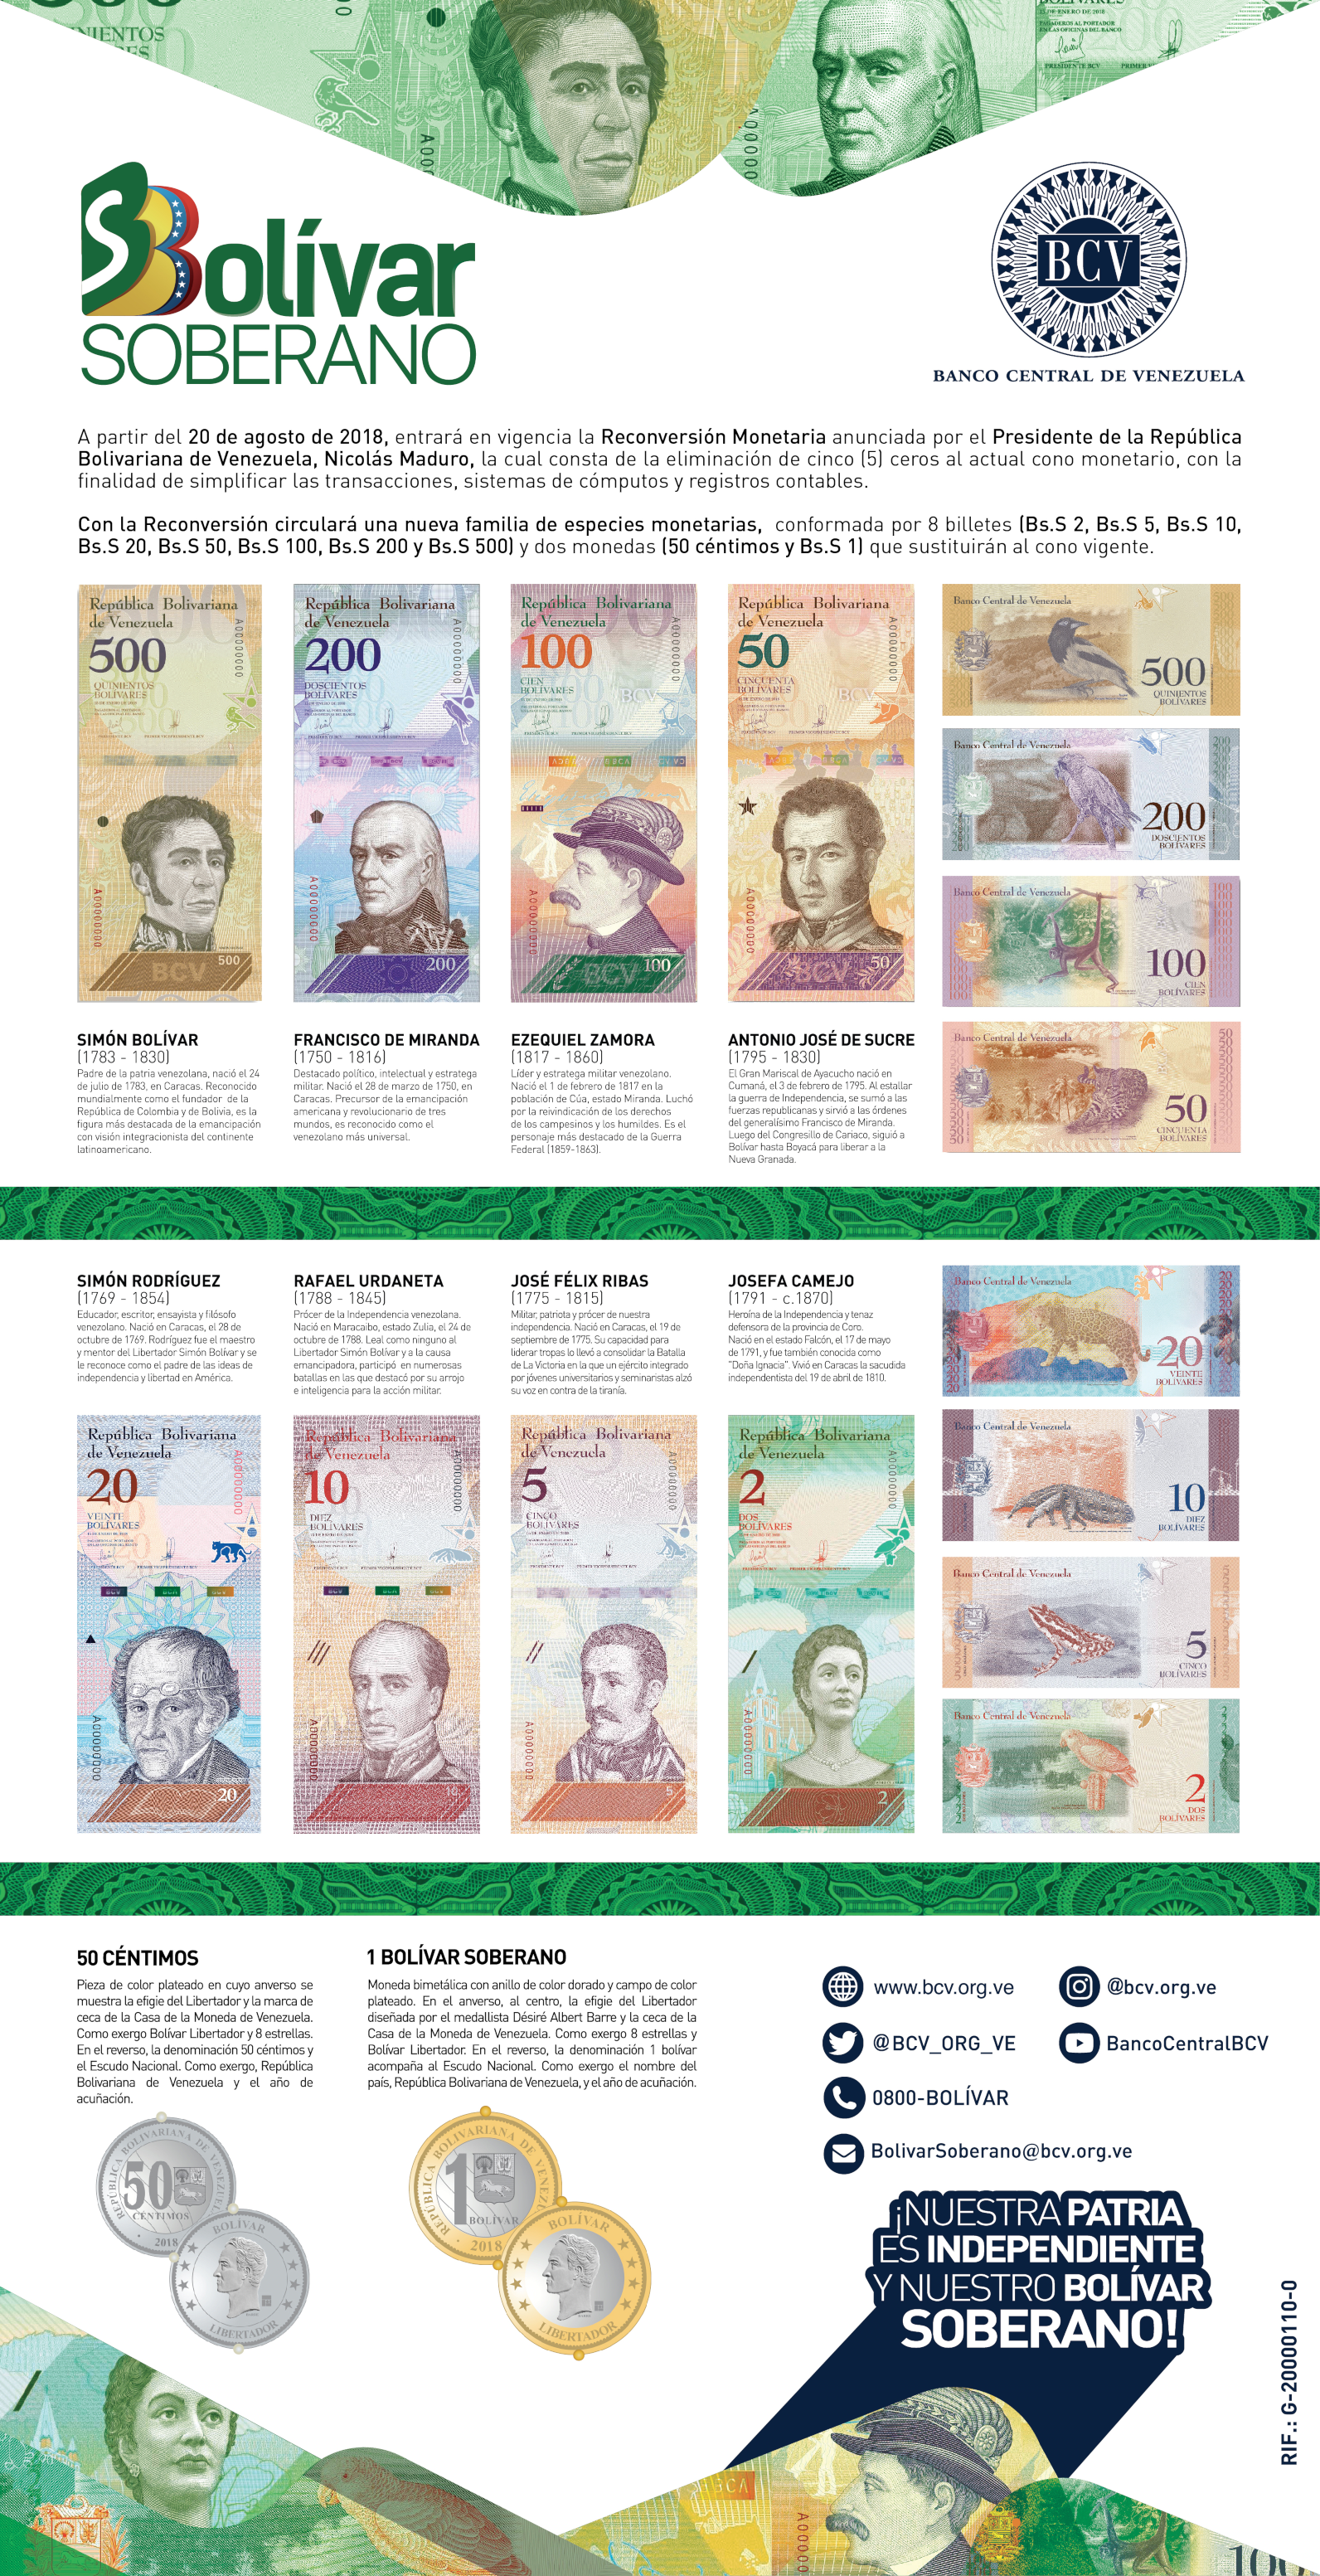 The Venezuelan Bolivar and the Iraqi Dinar - How a redenomination works Folleto_para_pag_web-01_act